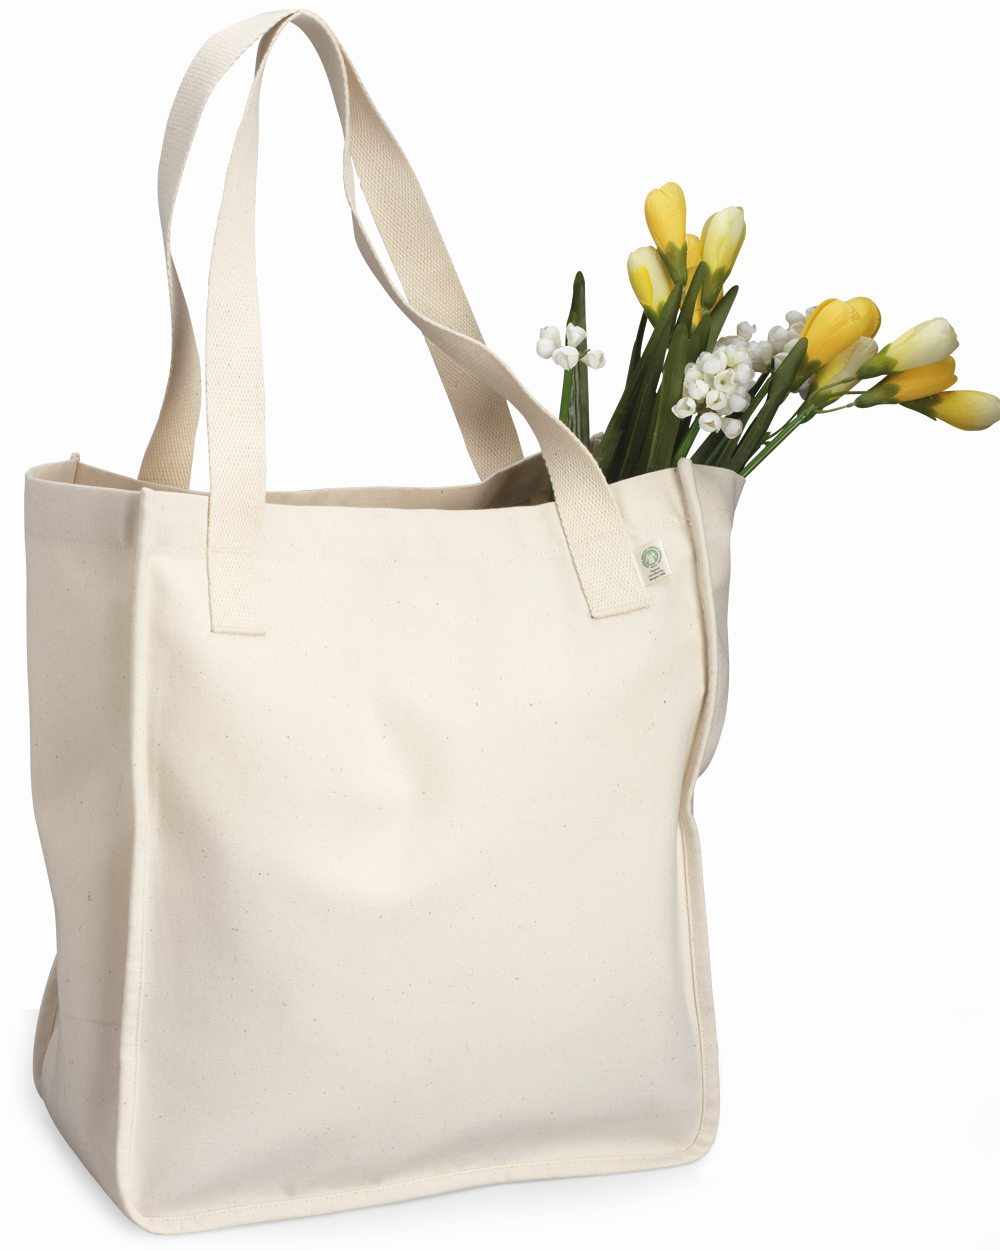 Simply shopping canvas tote bag